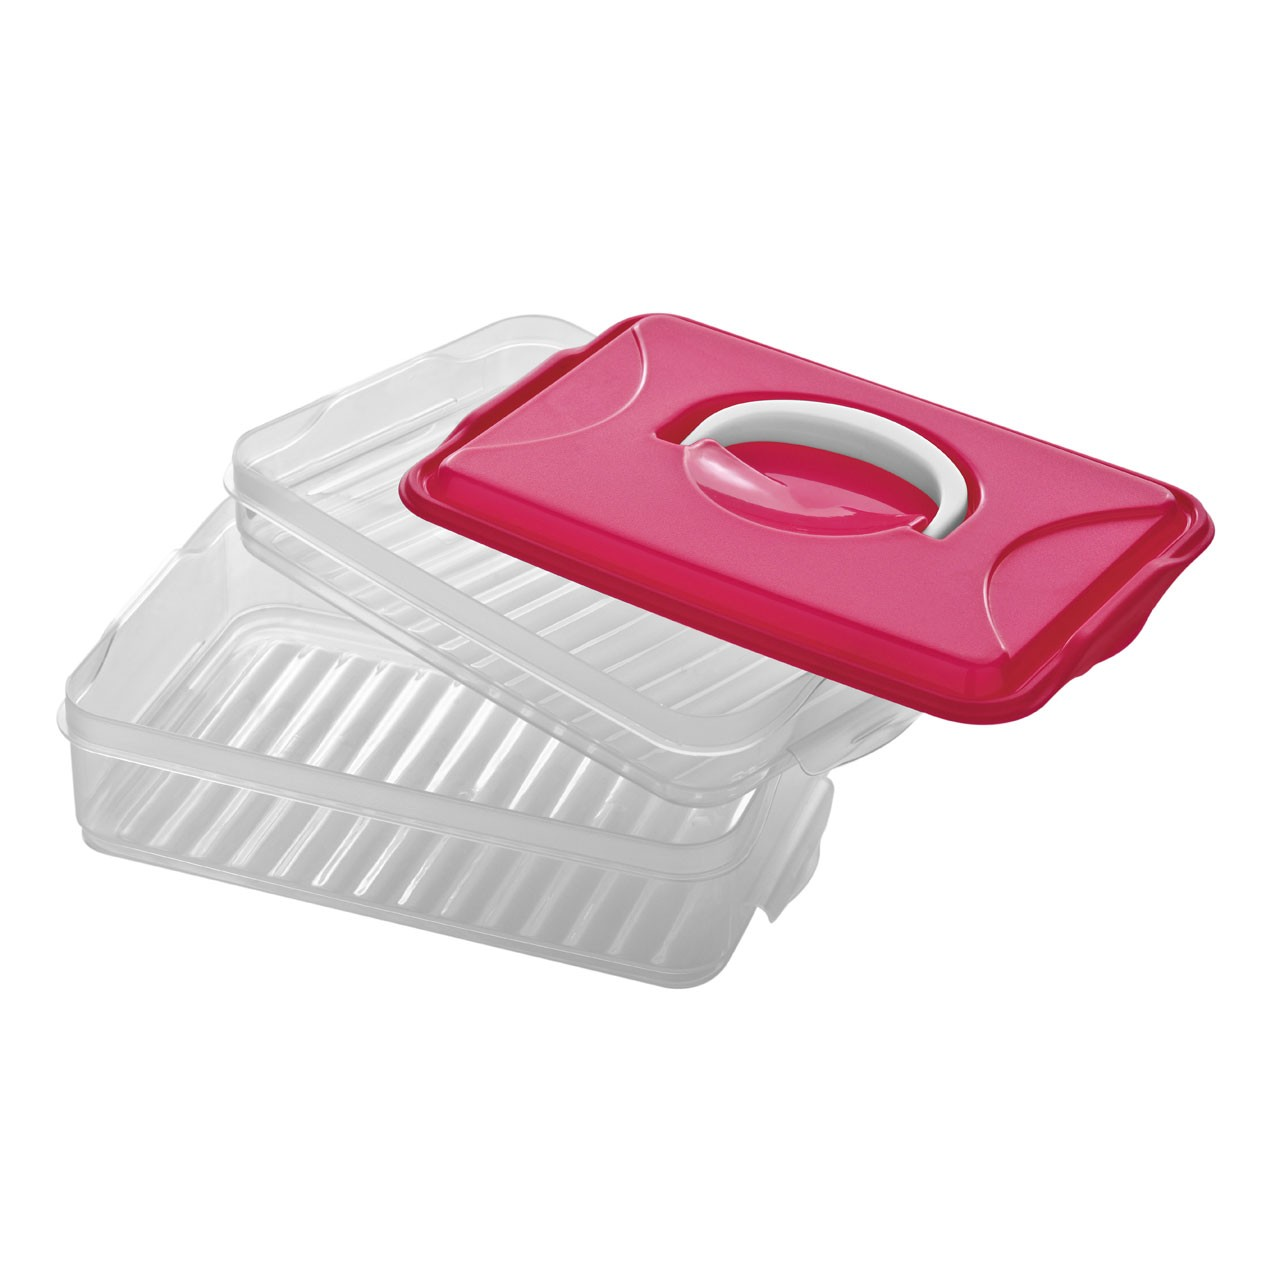 2 Layer Storage With Handle Clear Plastic - Hot Pink